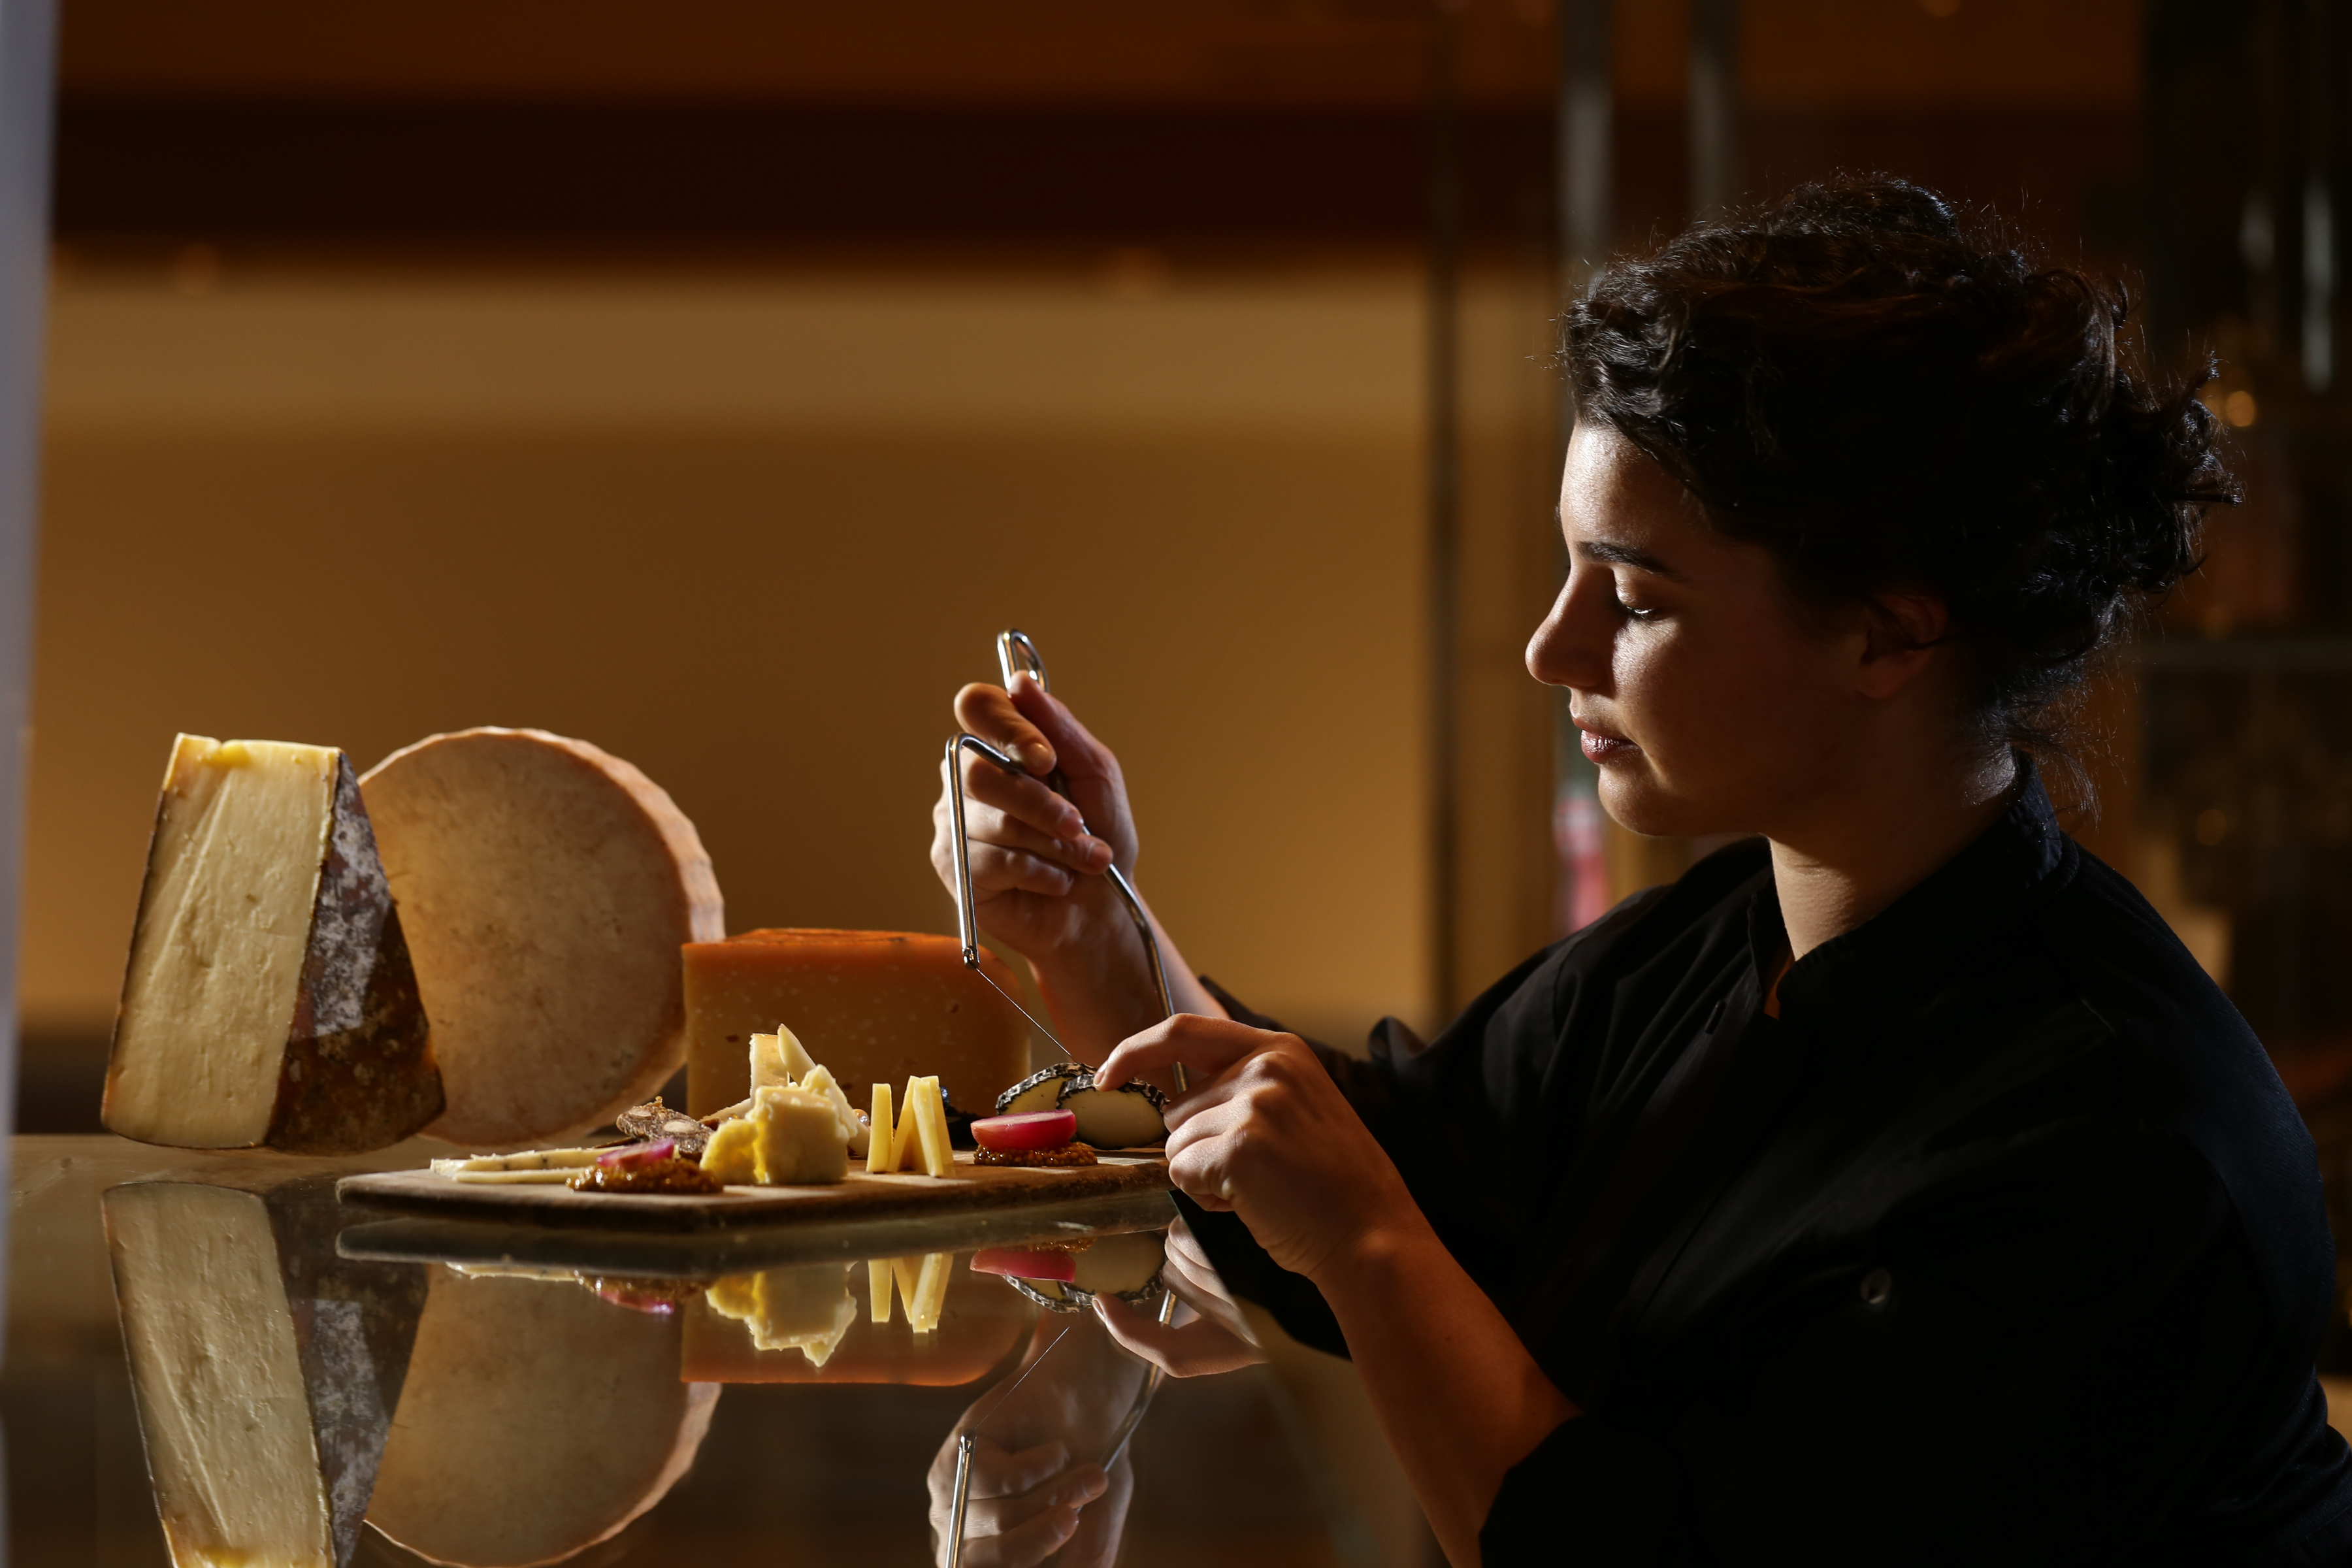 Blue Duck Tavern's cheese specialist Sophie Slesinger builds a cheese plate. (Photo: Len DePas Photography)